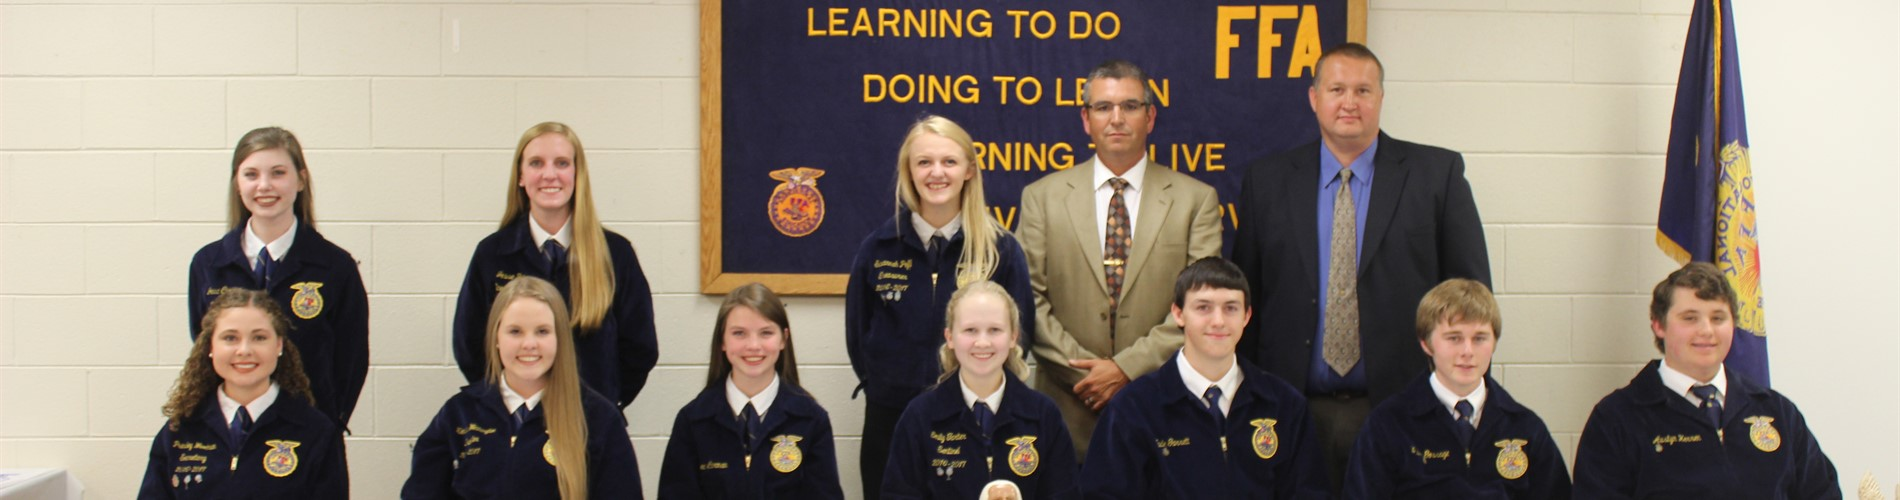 Casey County FFA transforming members into better leaders.